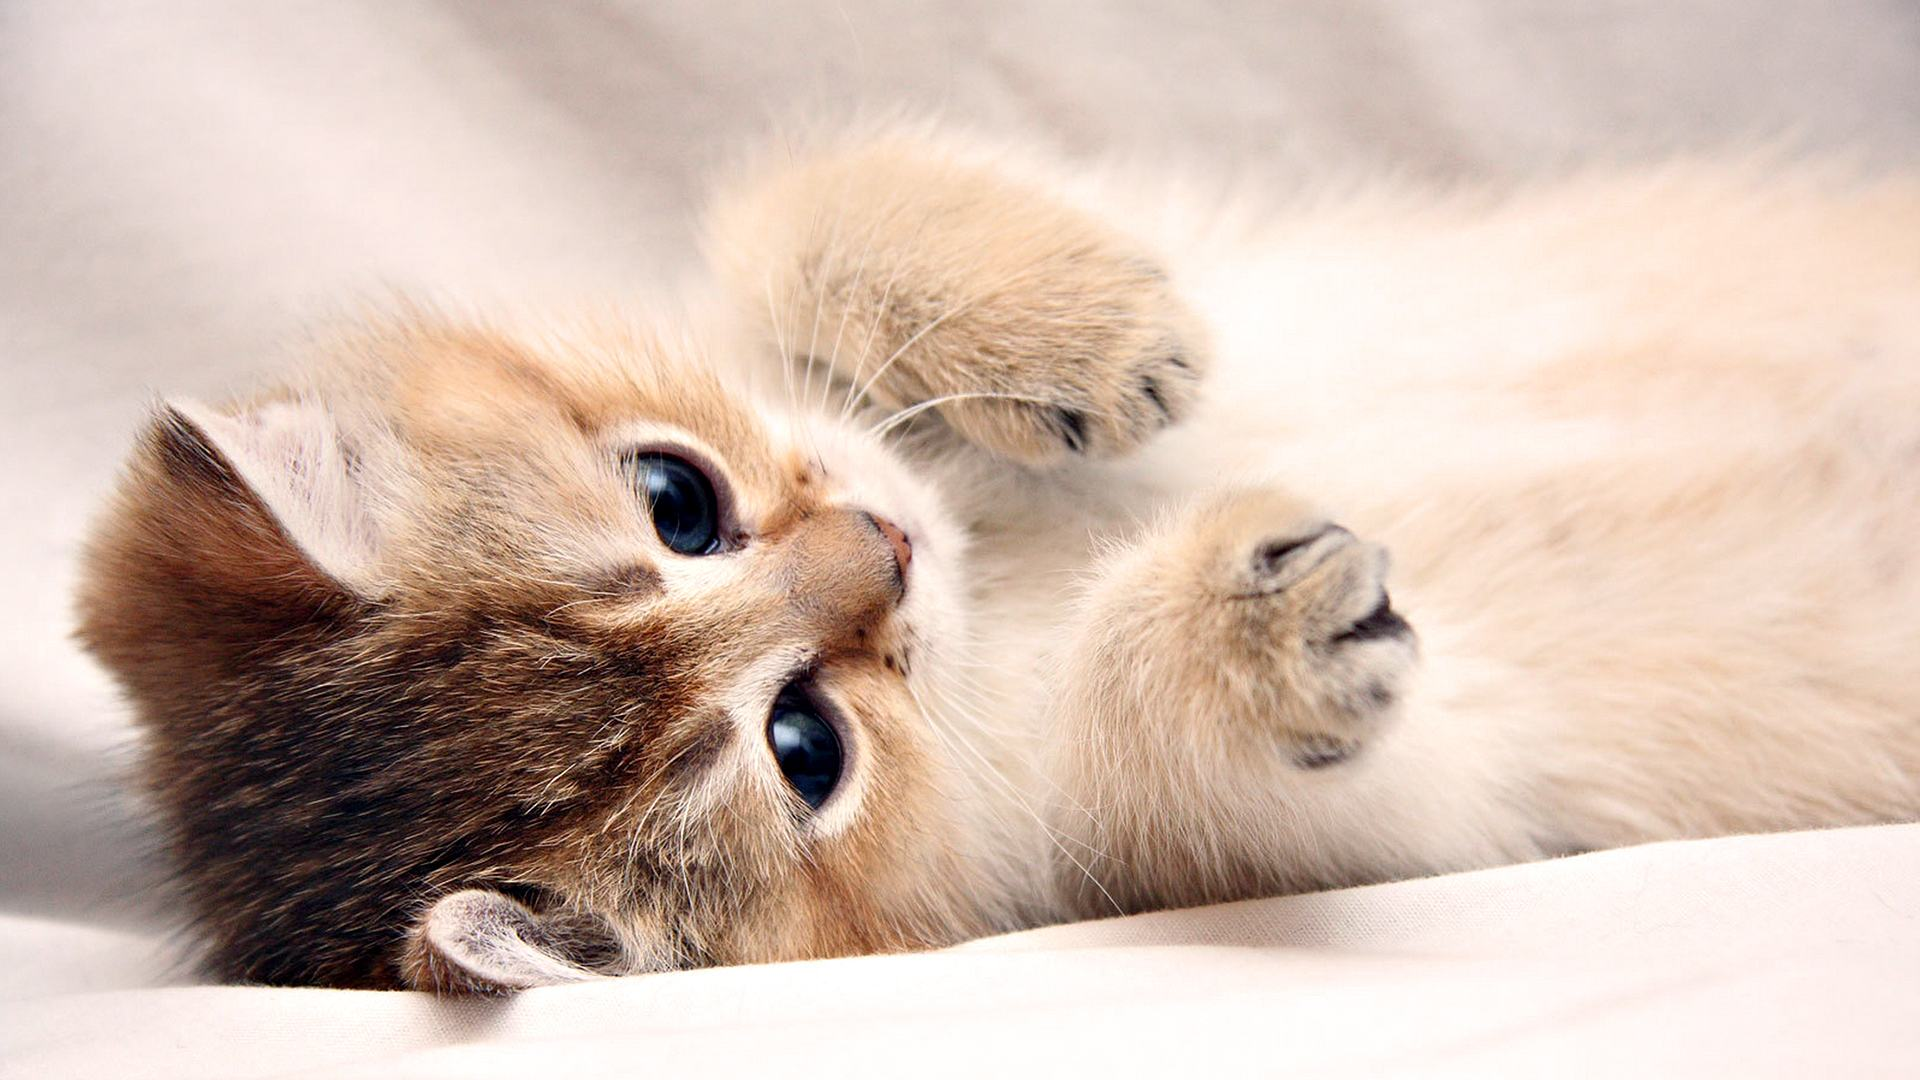 Wallpapers Backgrounds   laptop background cute kitty landscape 1920x1080